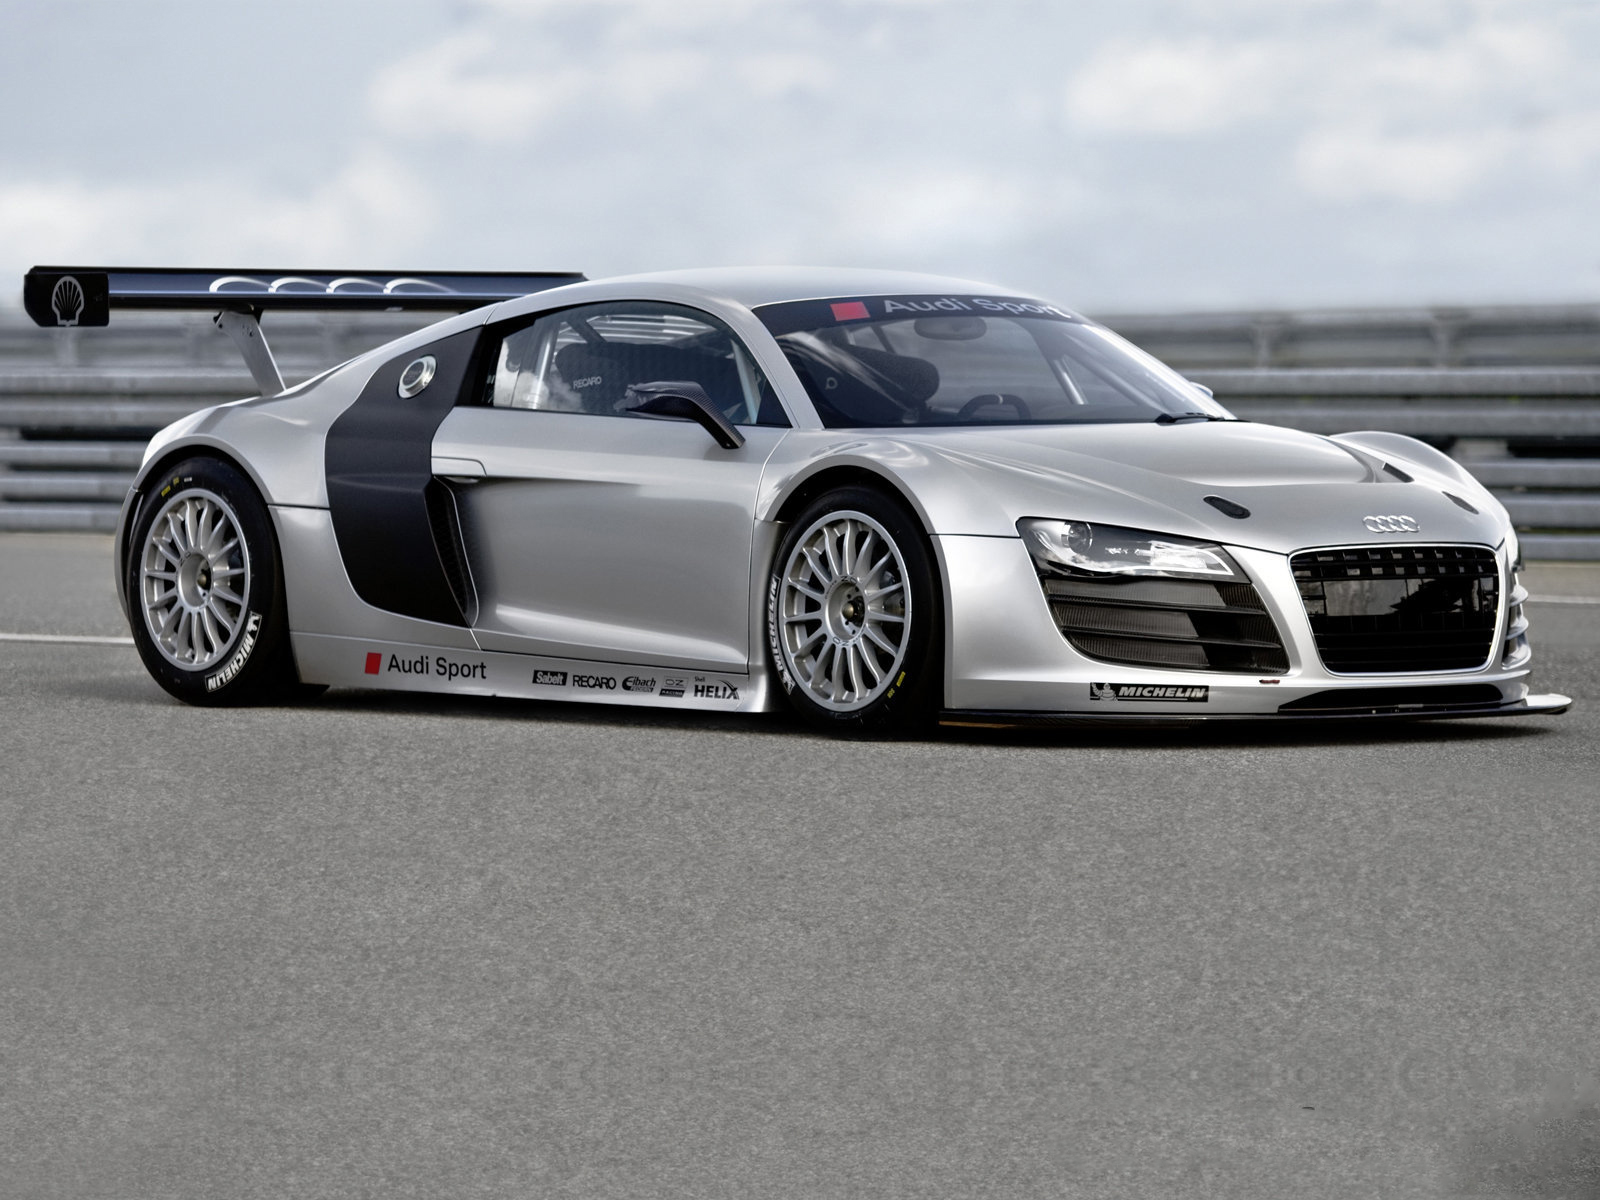 Audi r8 gt3 front angle